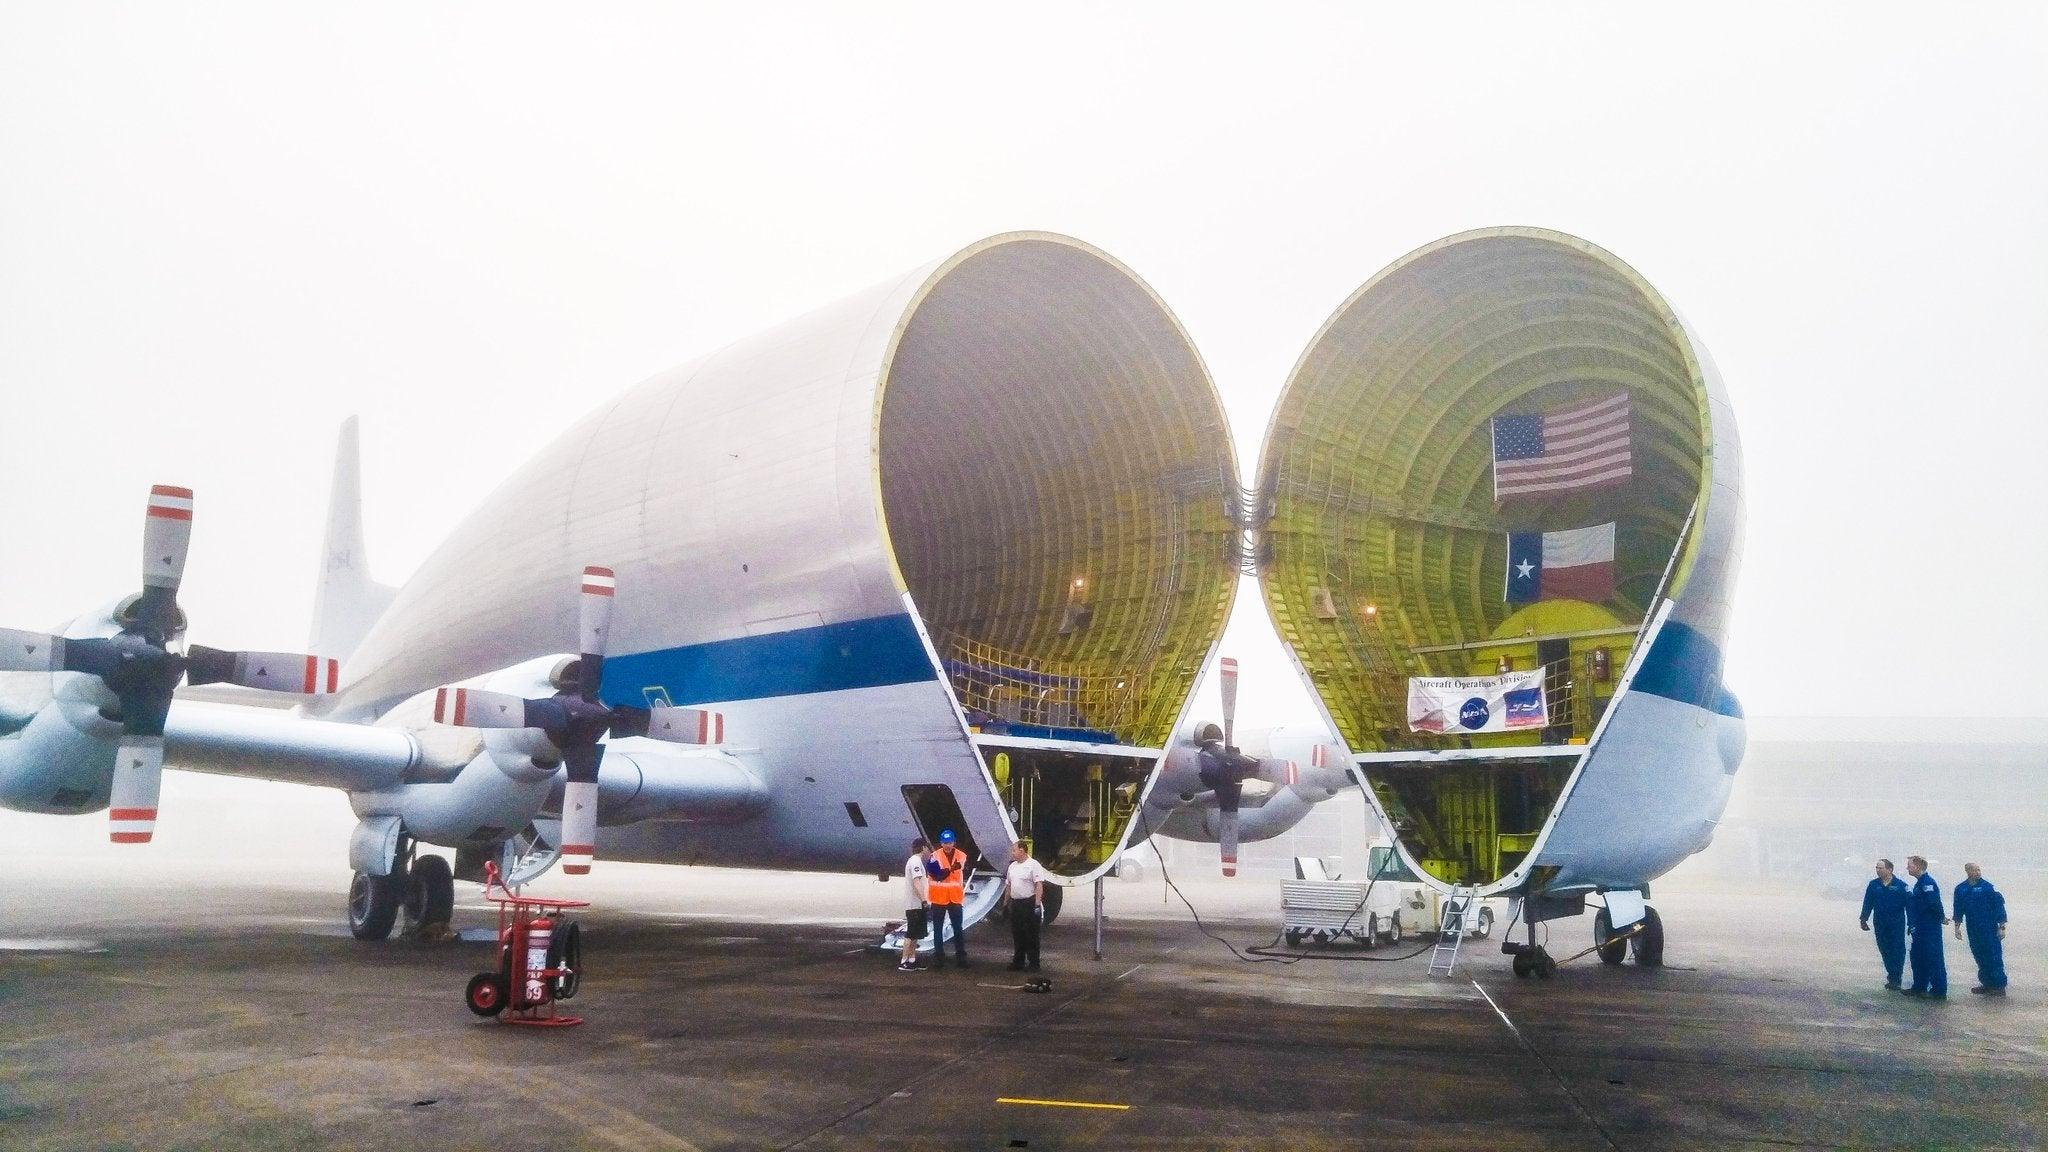 NASA's Weird Giant Airplane Carried The Future Of Mars In Its Belly